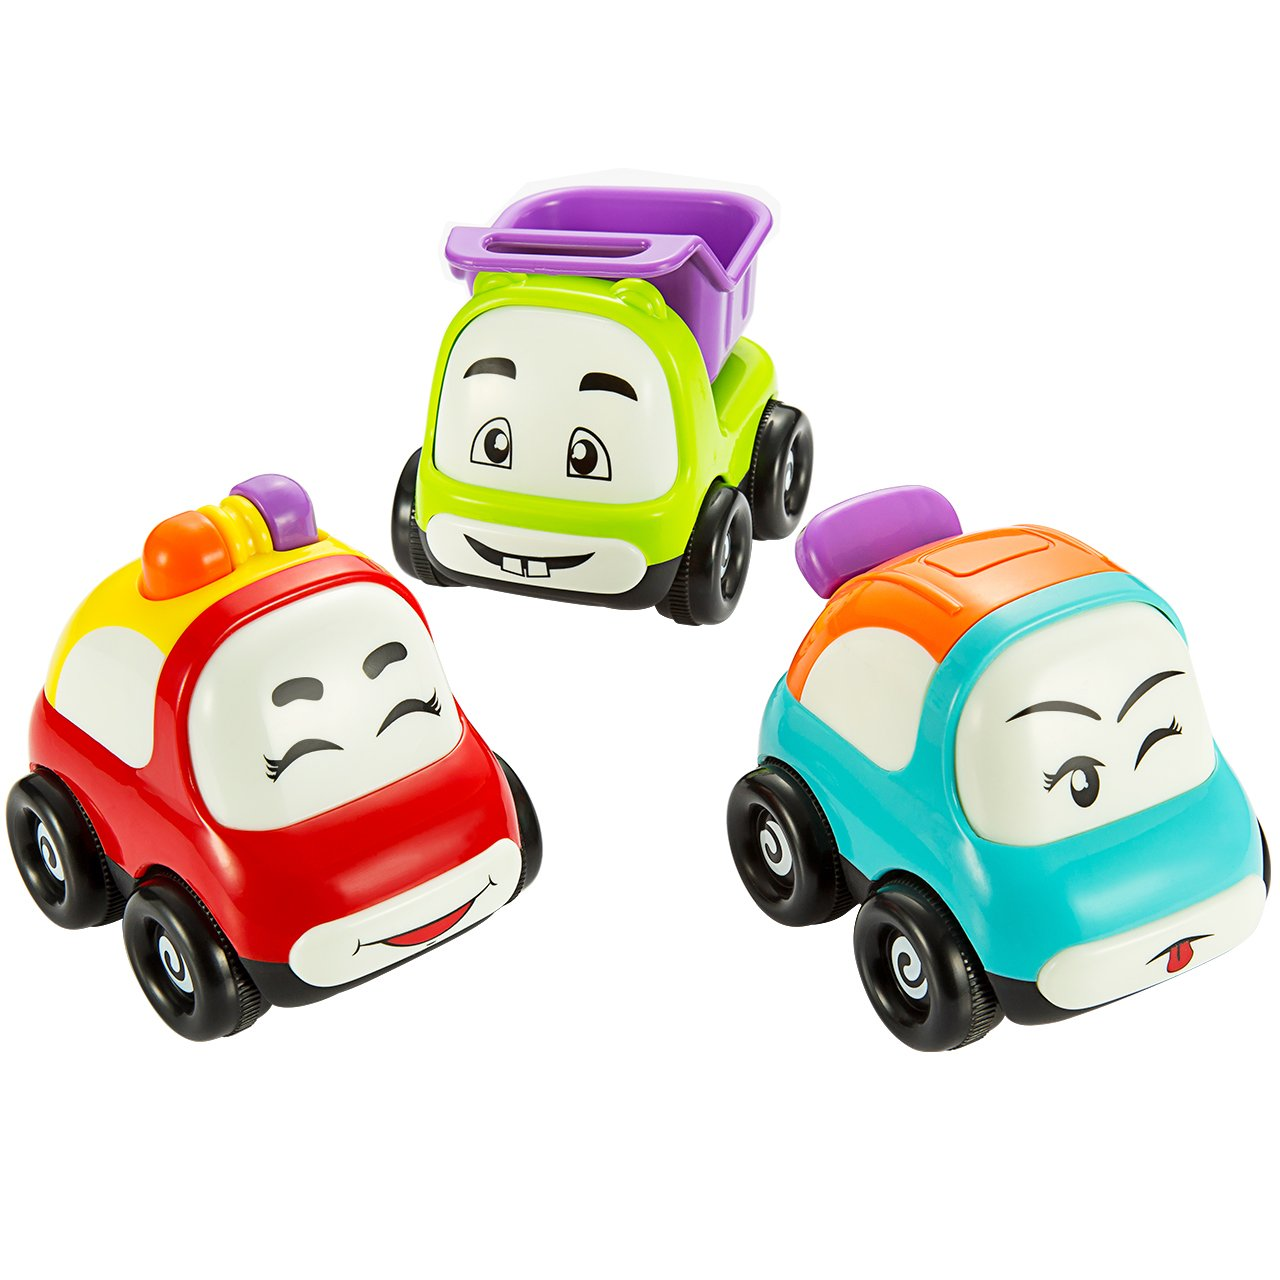 amazon com pictek cars toy set of 3 play vehicles push and go